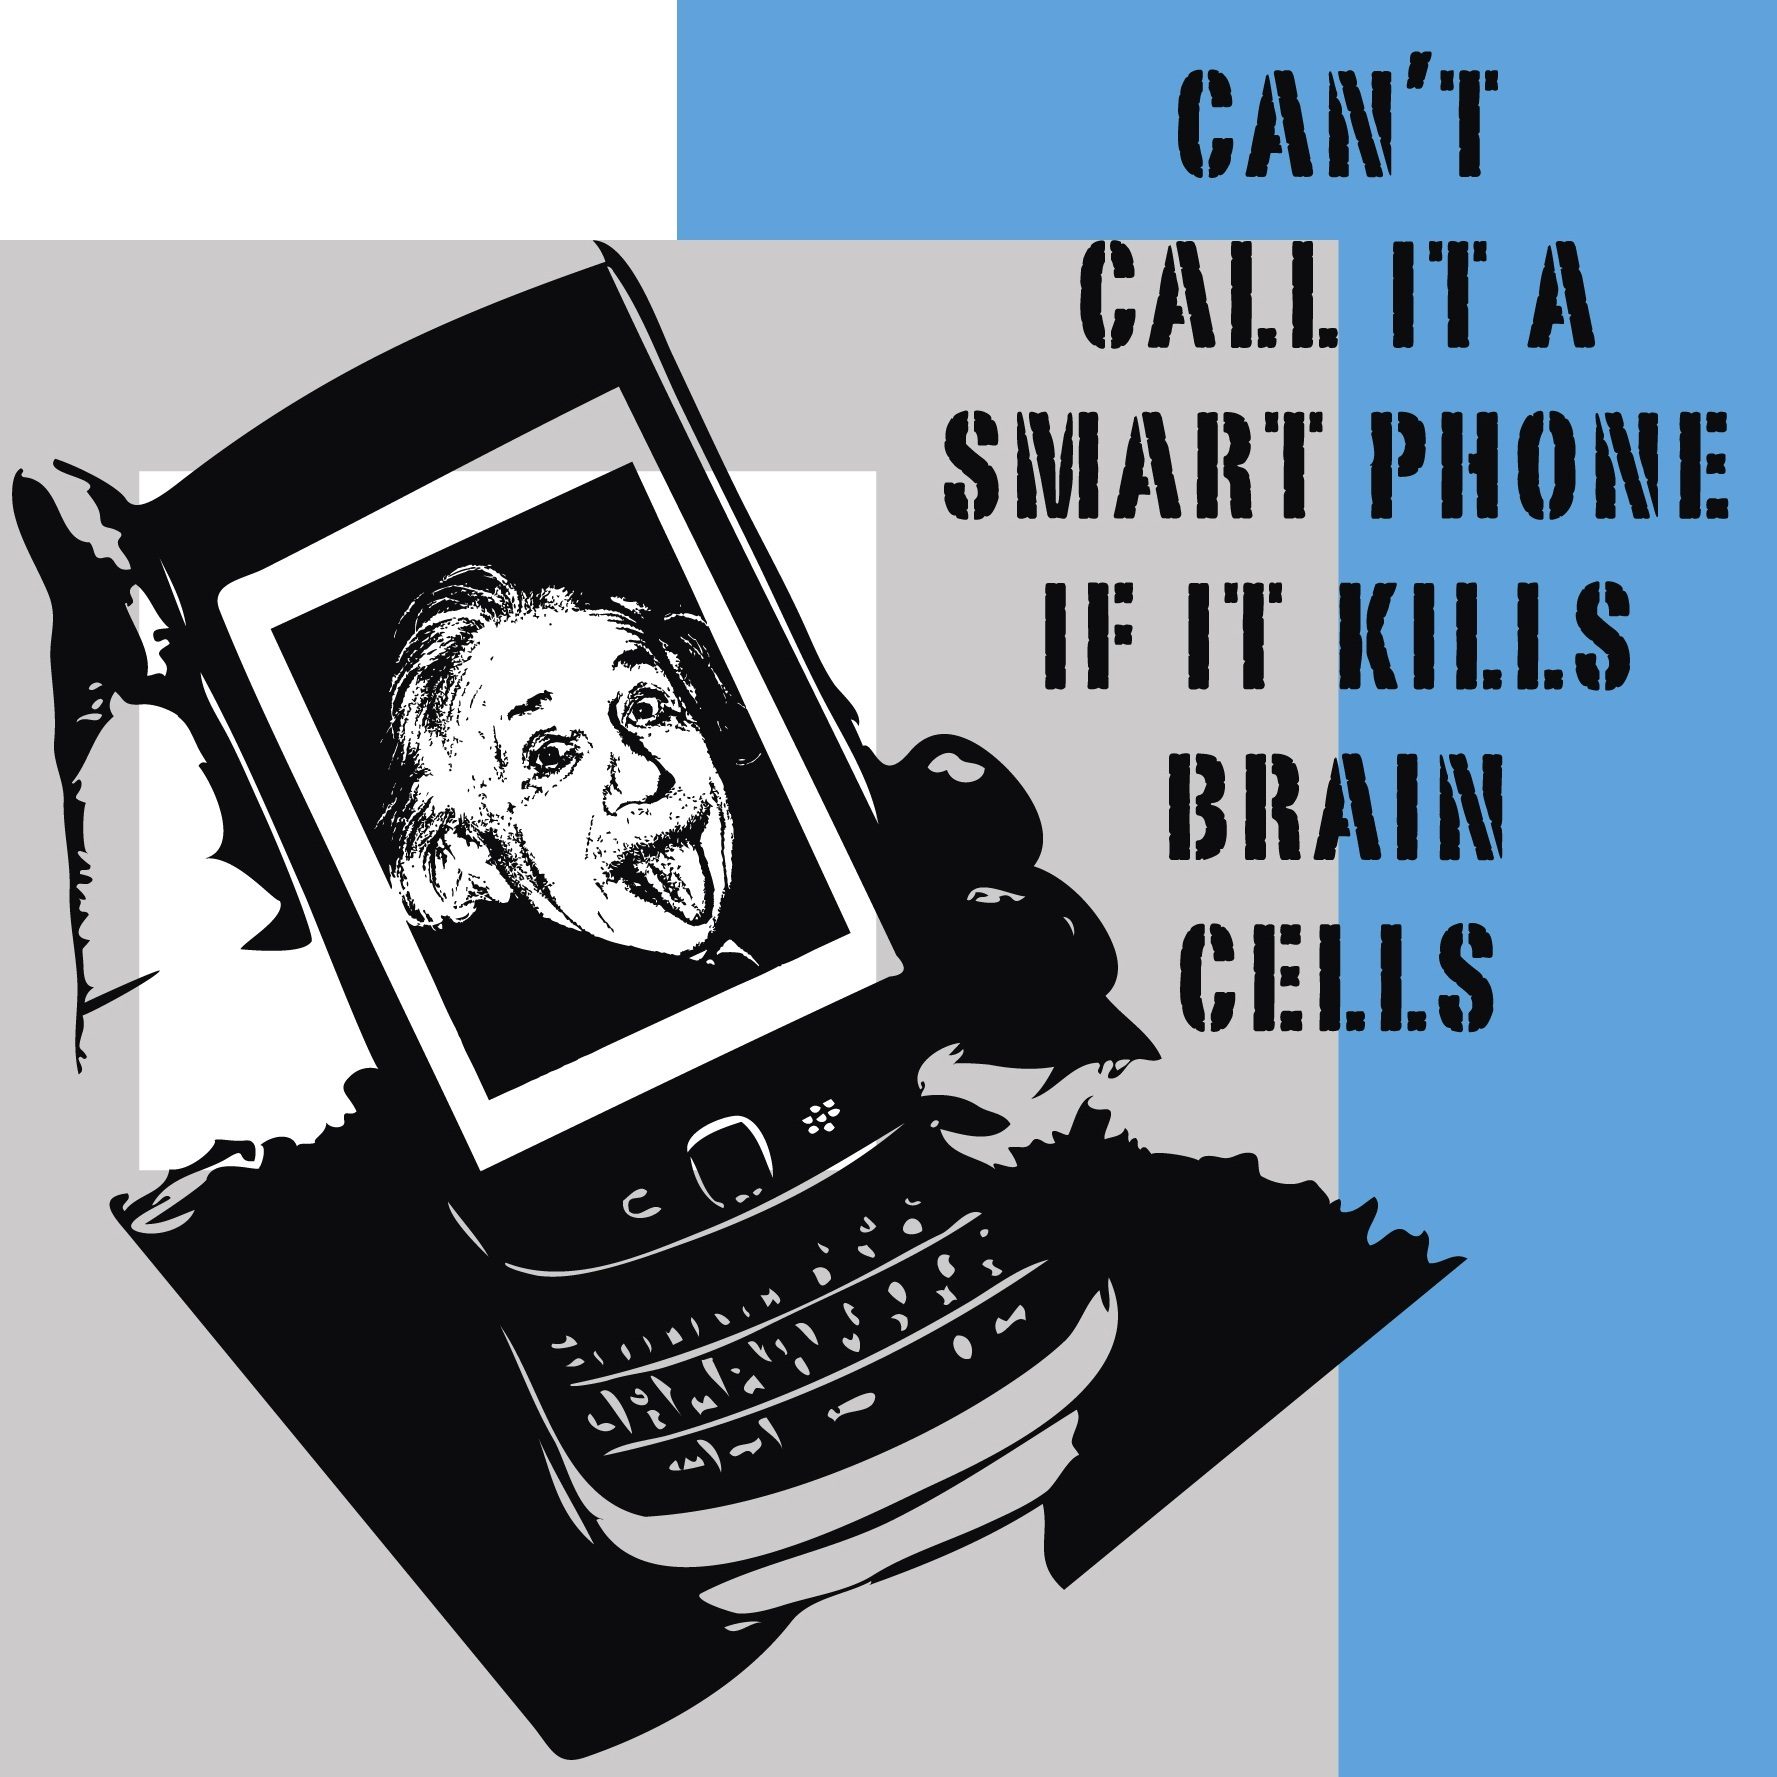 Cant call it a smartphone if it kills brain cells